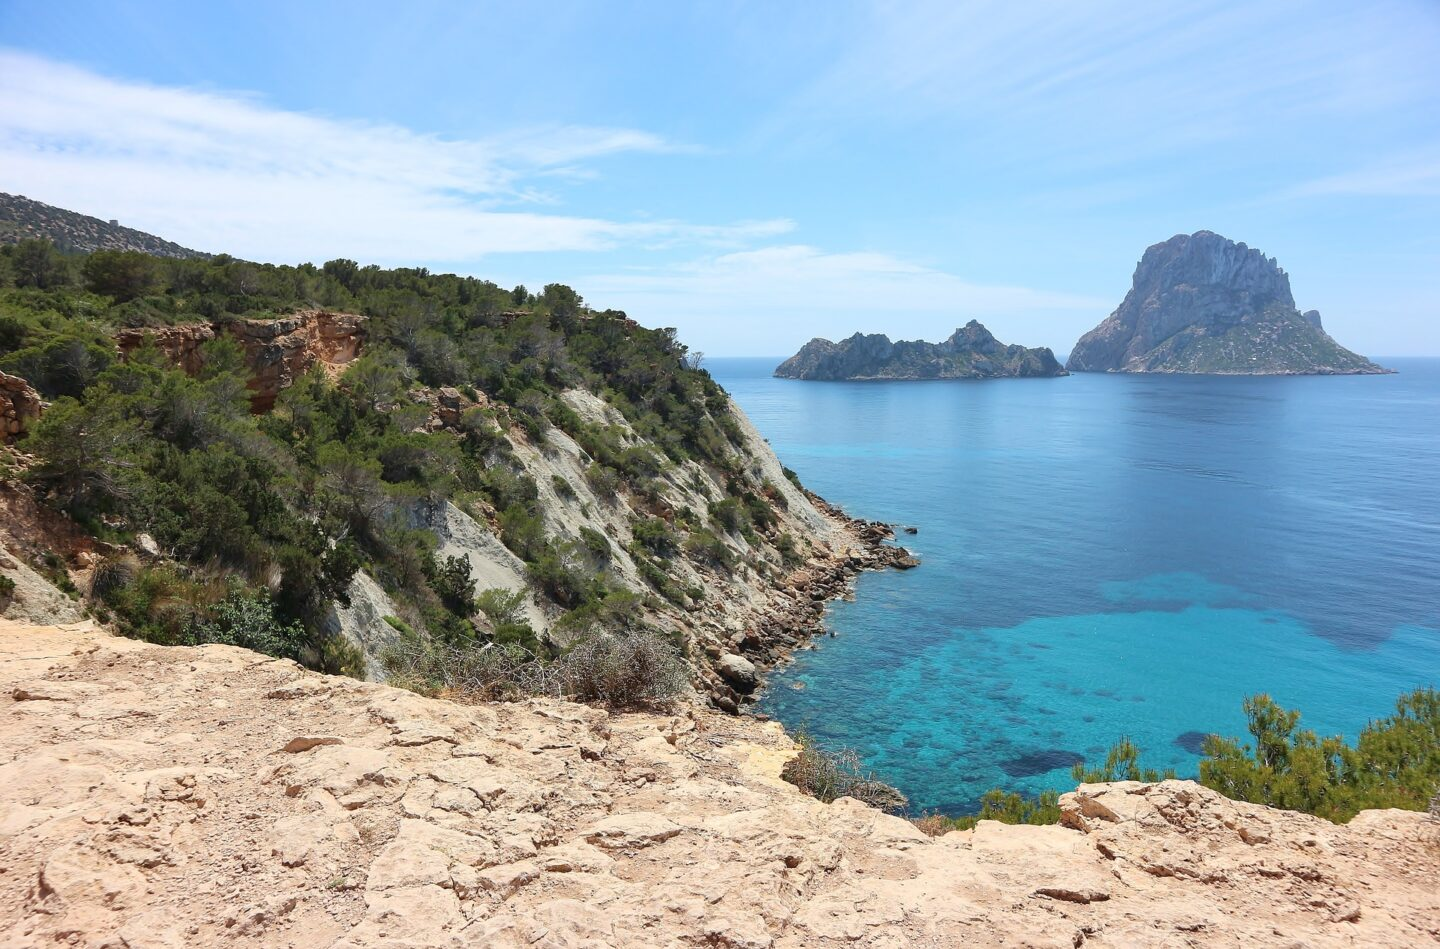 Spain: If You Are Looking For Luxury, Head To Ibiza